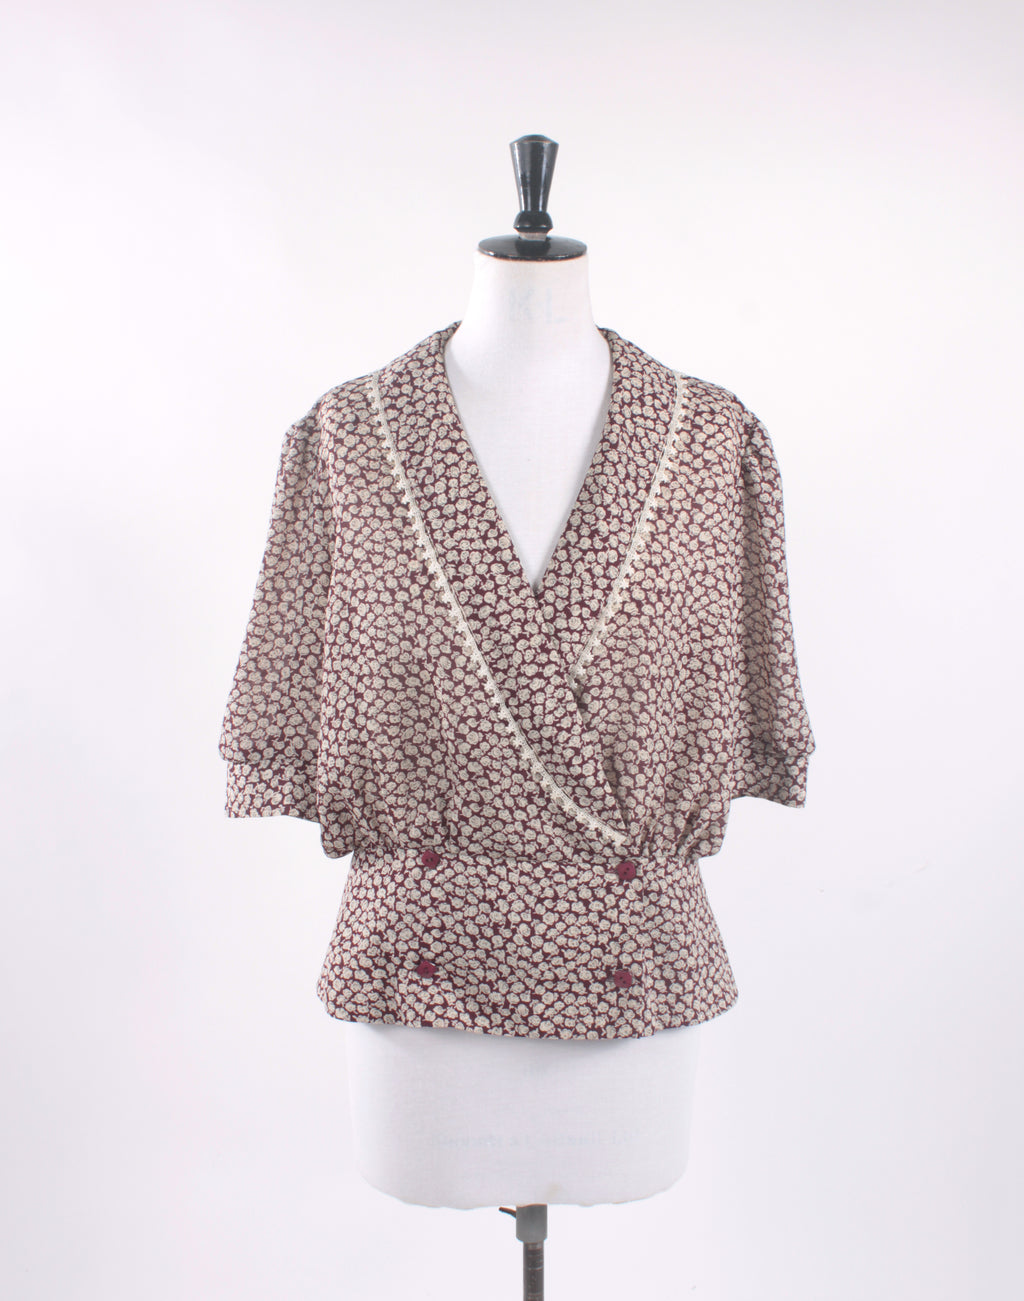 Vintage 80's Brown Floral Frill Blouse